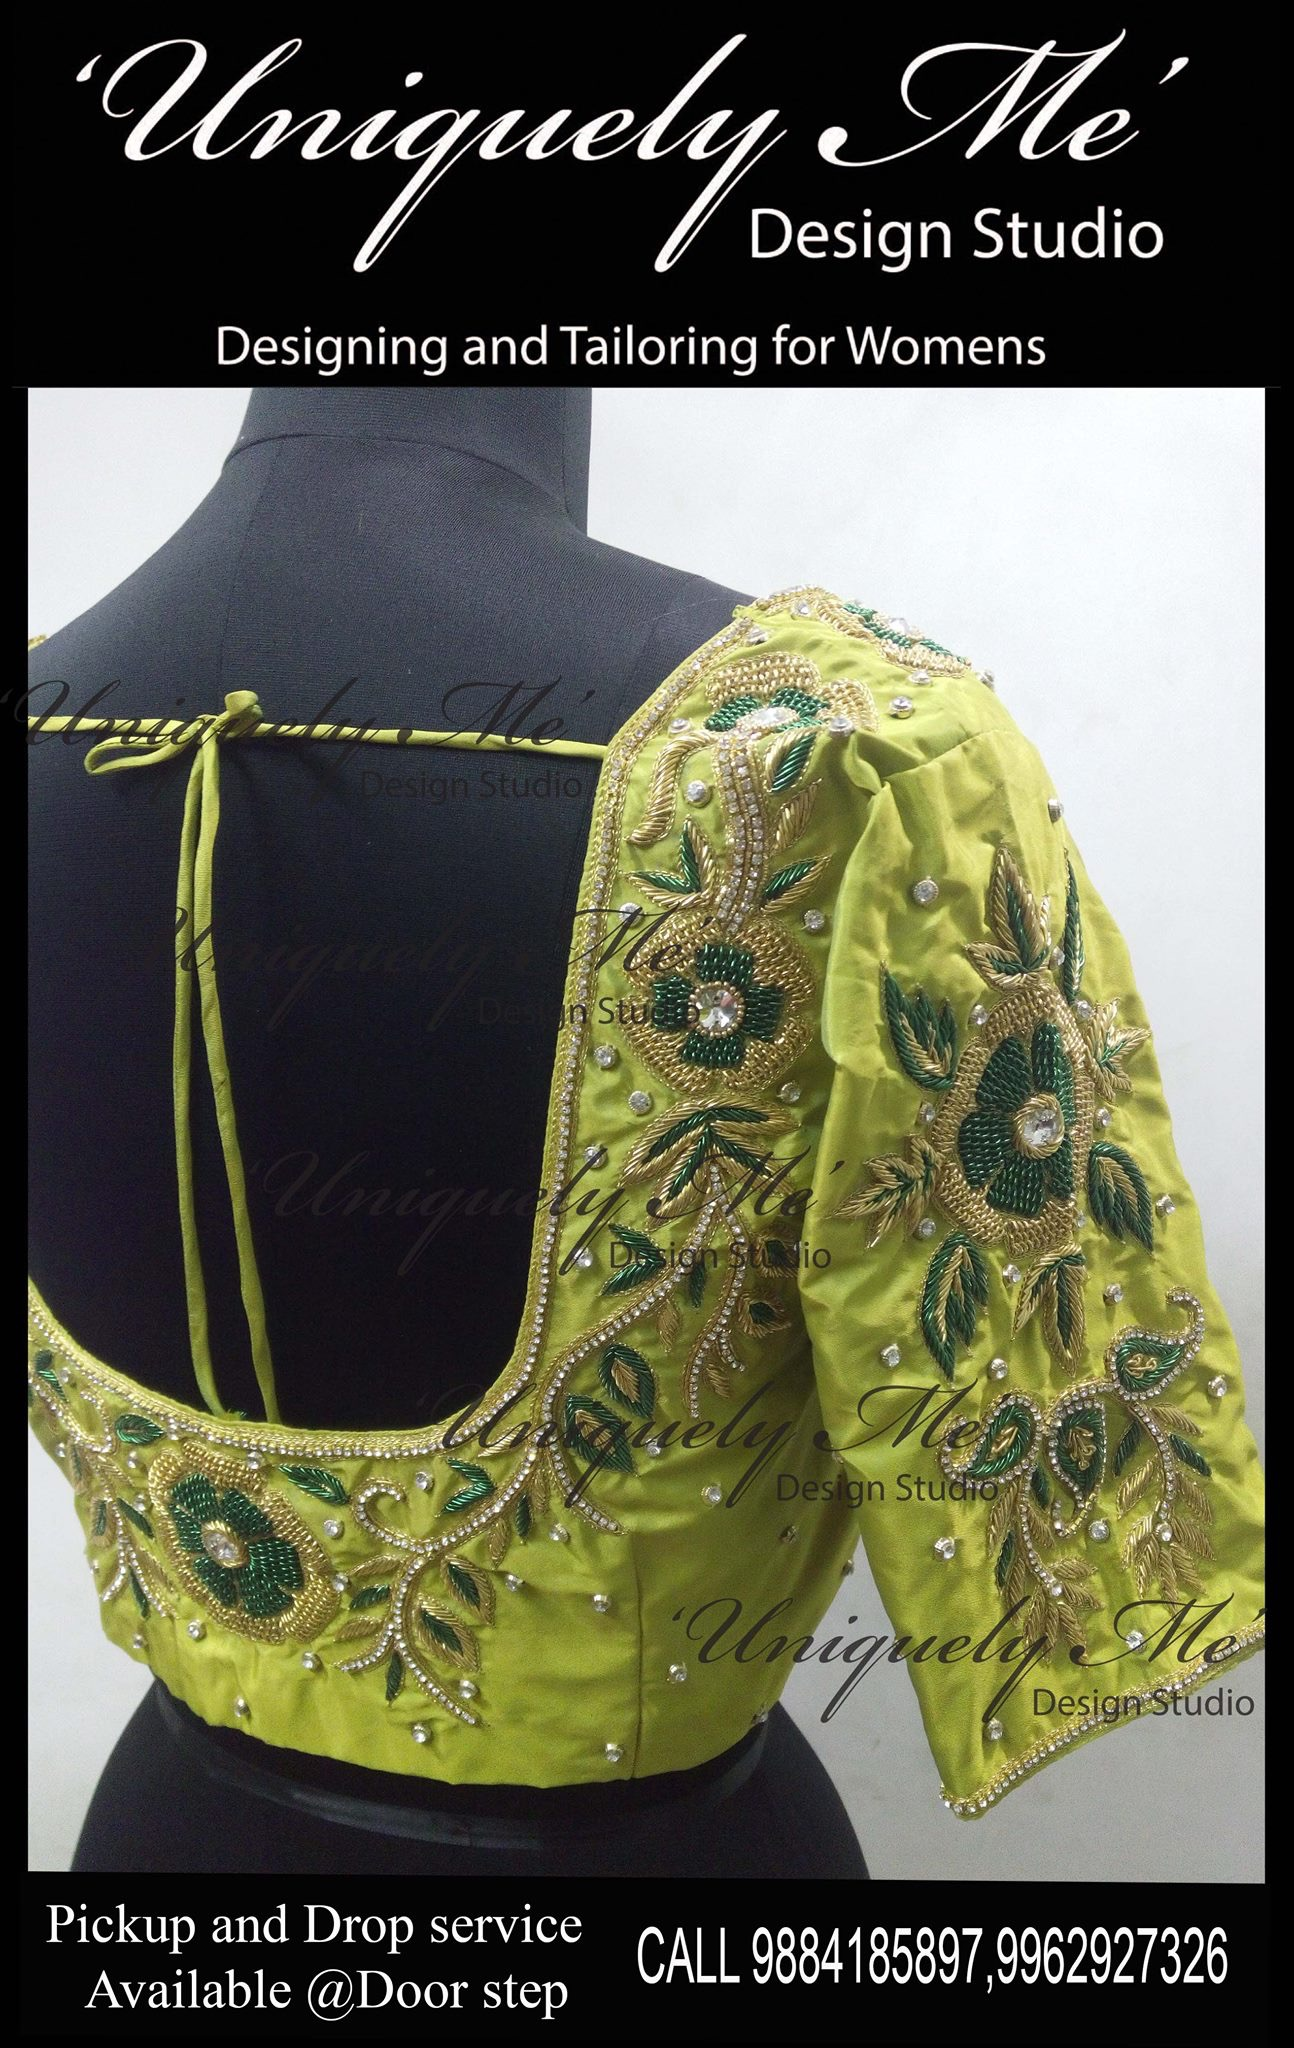 Wedding blouse in Mylapore